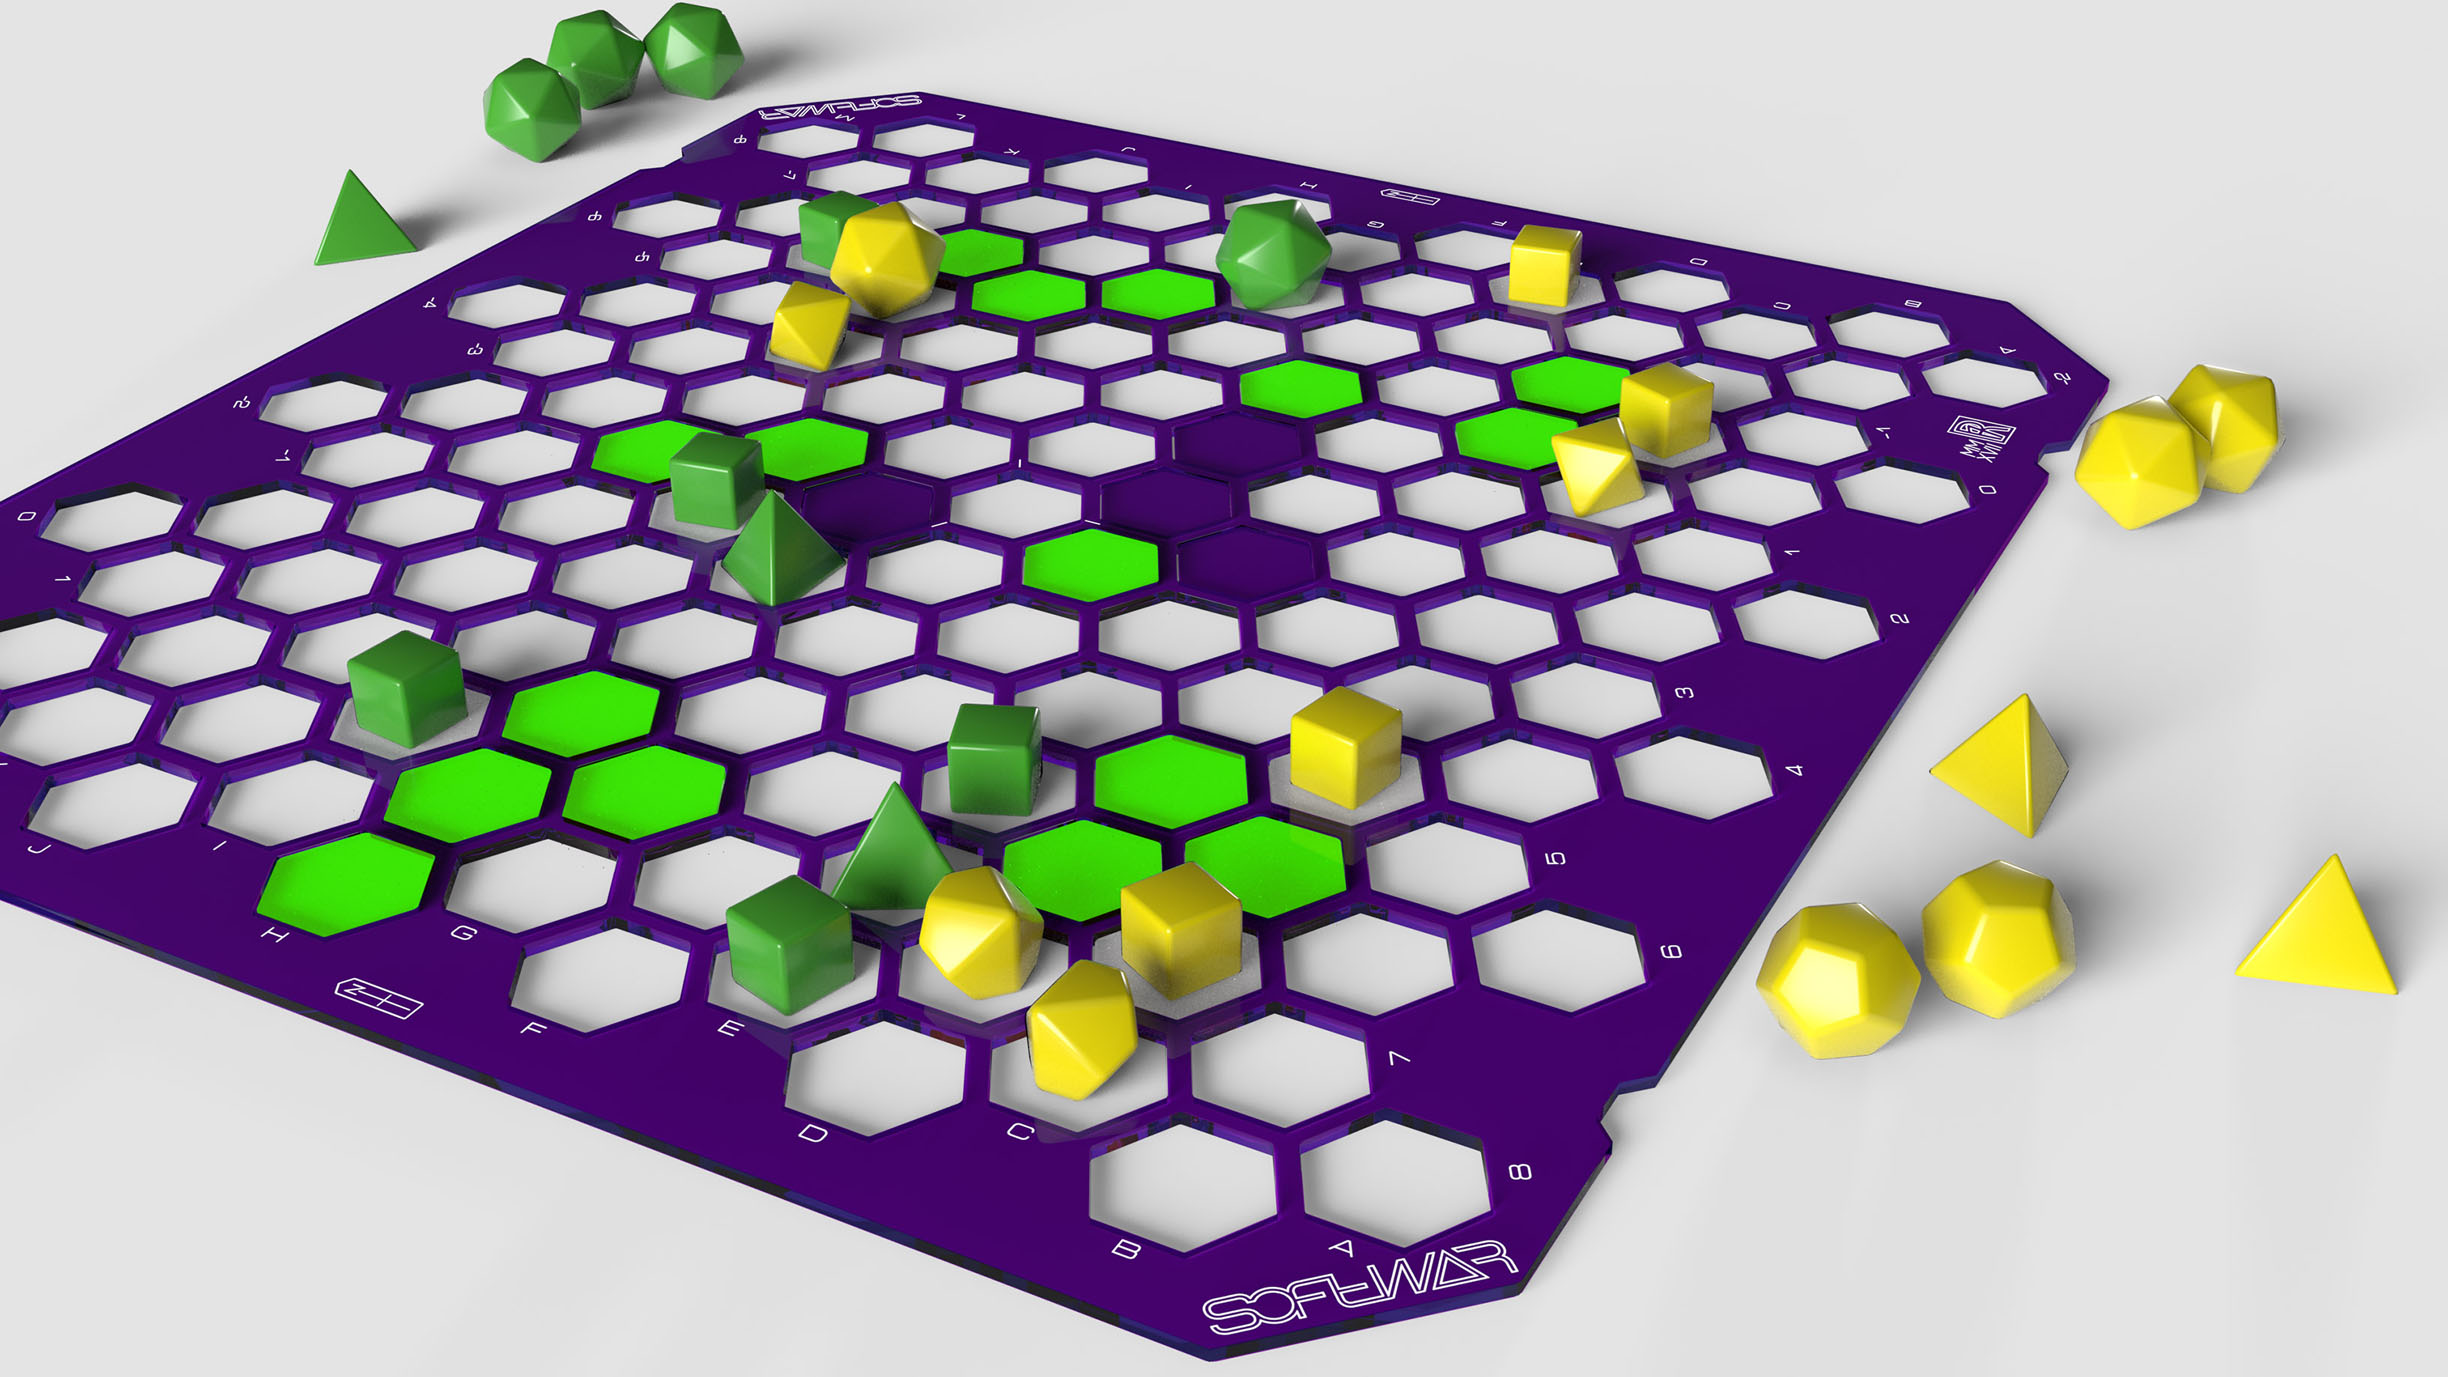 Fluorescent Green with Pruple tiles | Green and Yellow dice